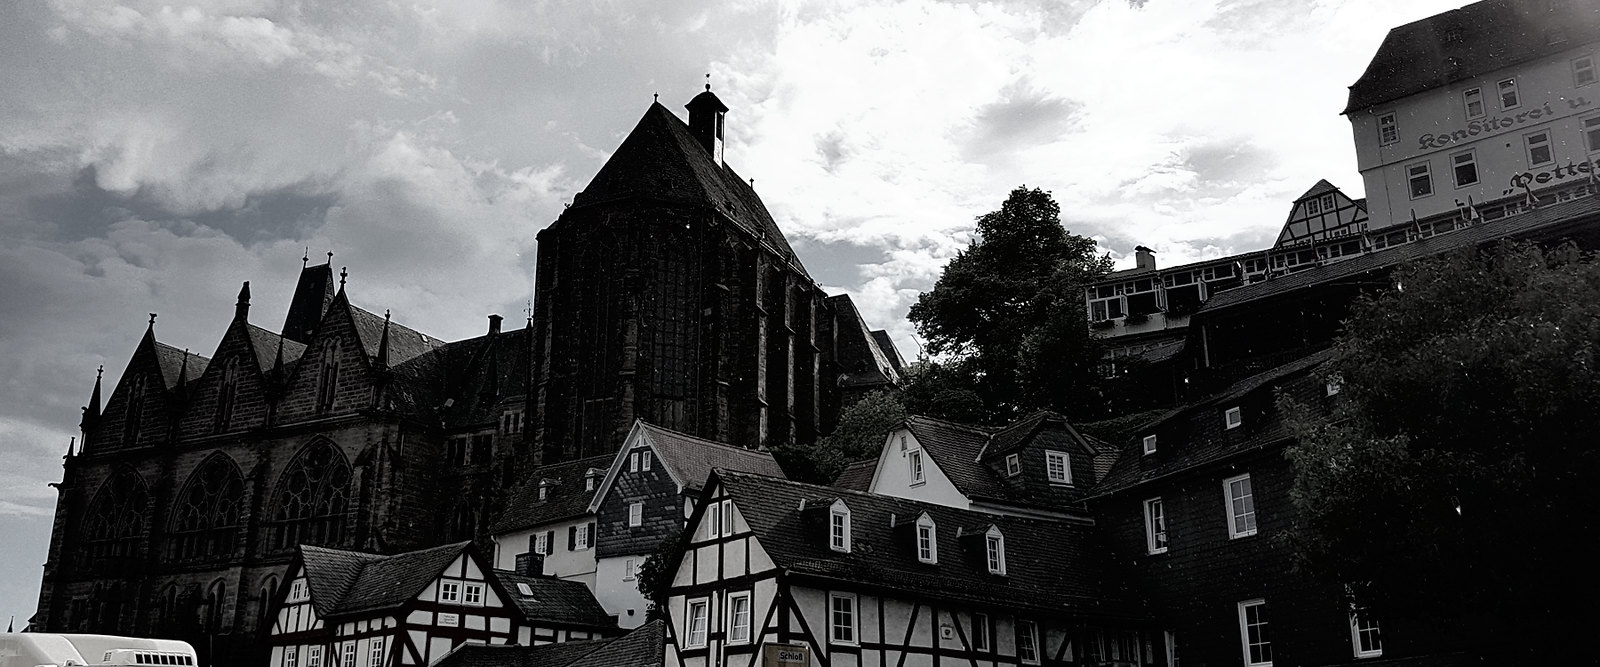 Marburg Alte Universität Travelblog Düsiblog 06